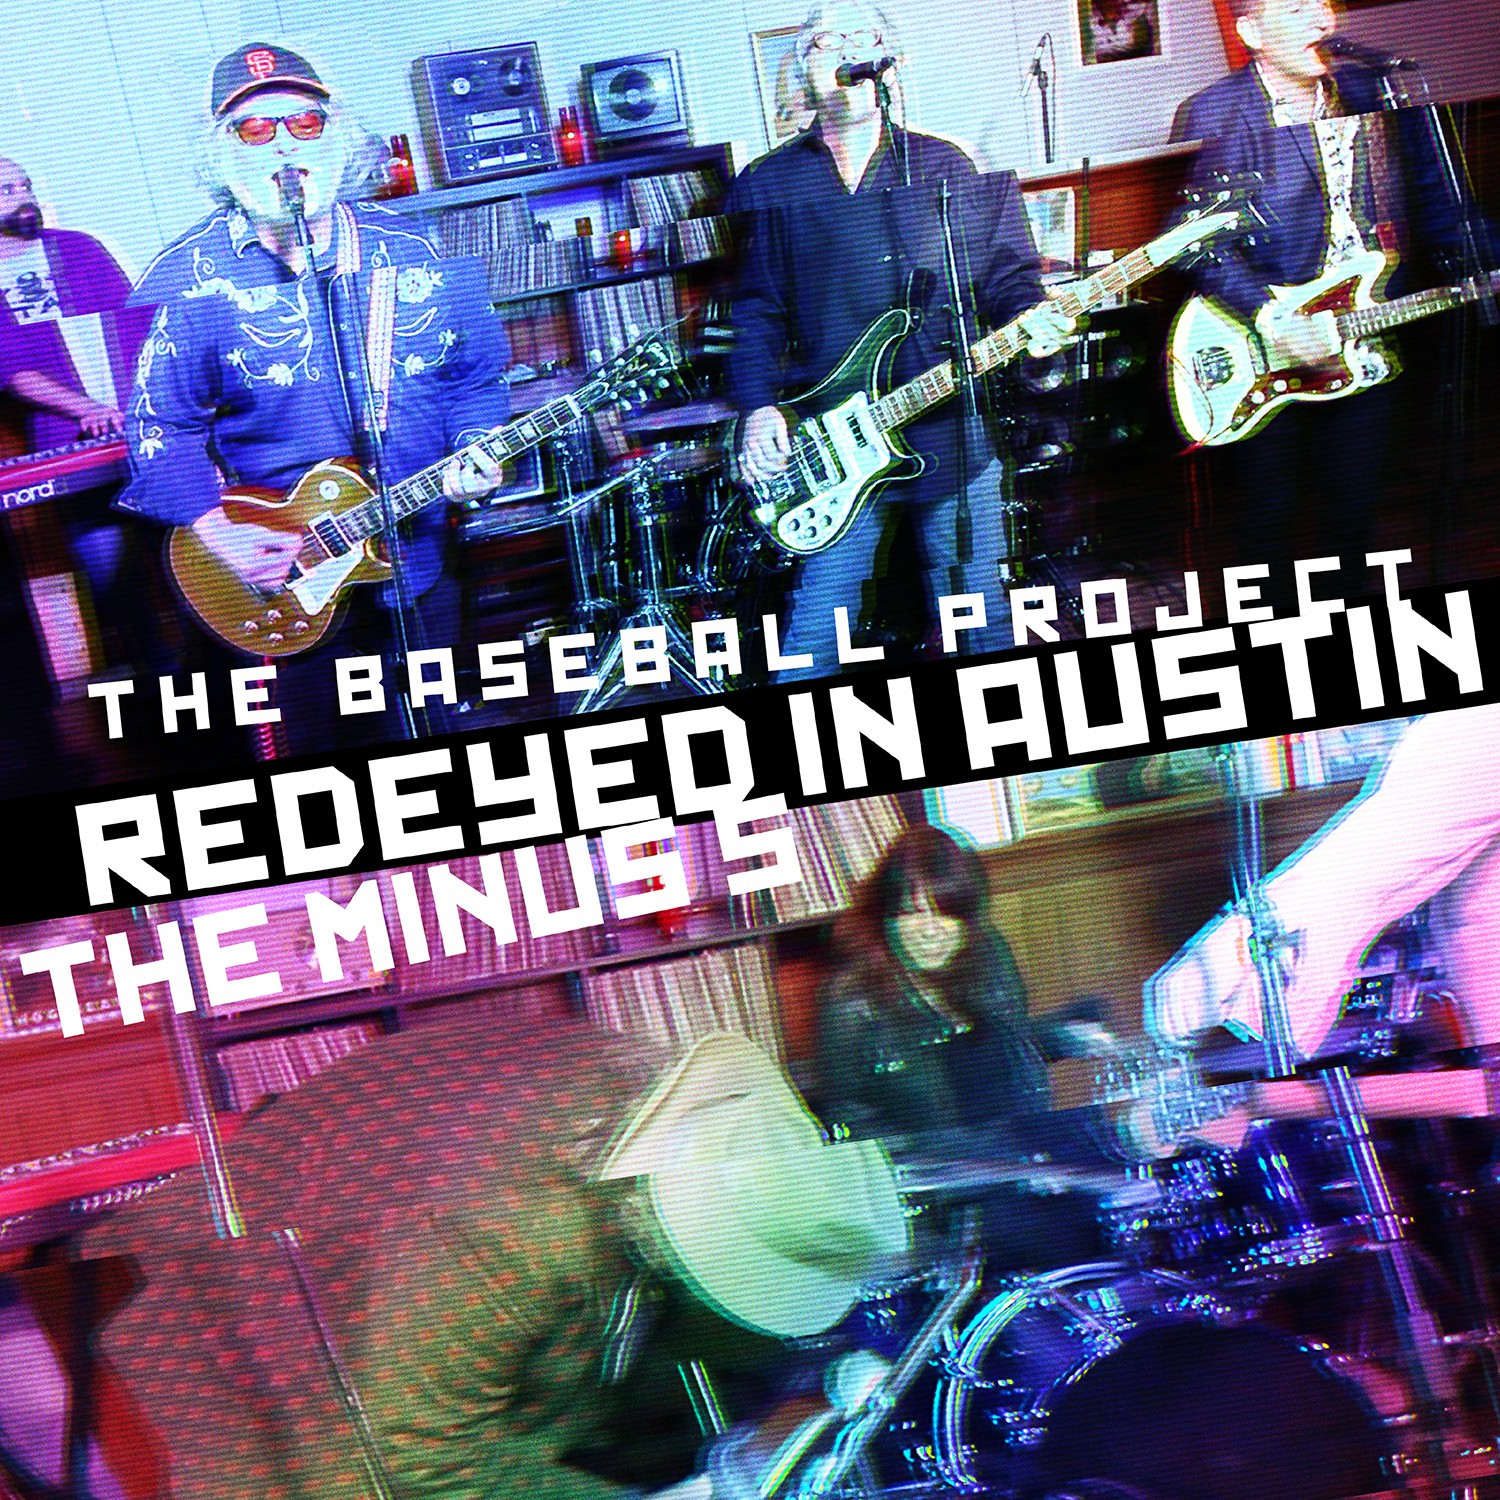 Baseball Project/Minus 5 - Redeyed In Austin - 12""